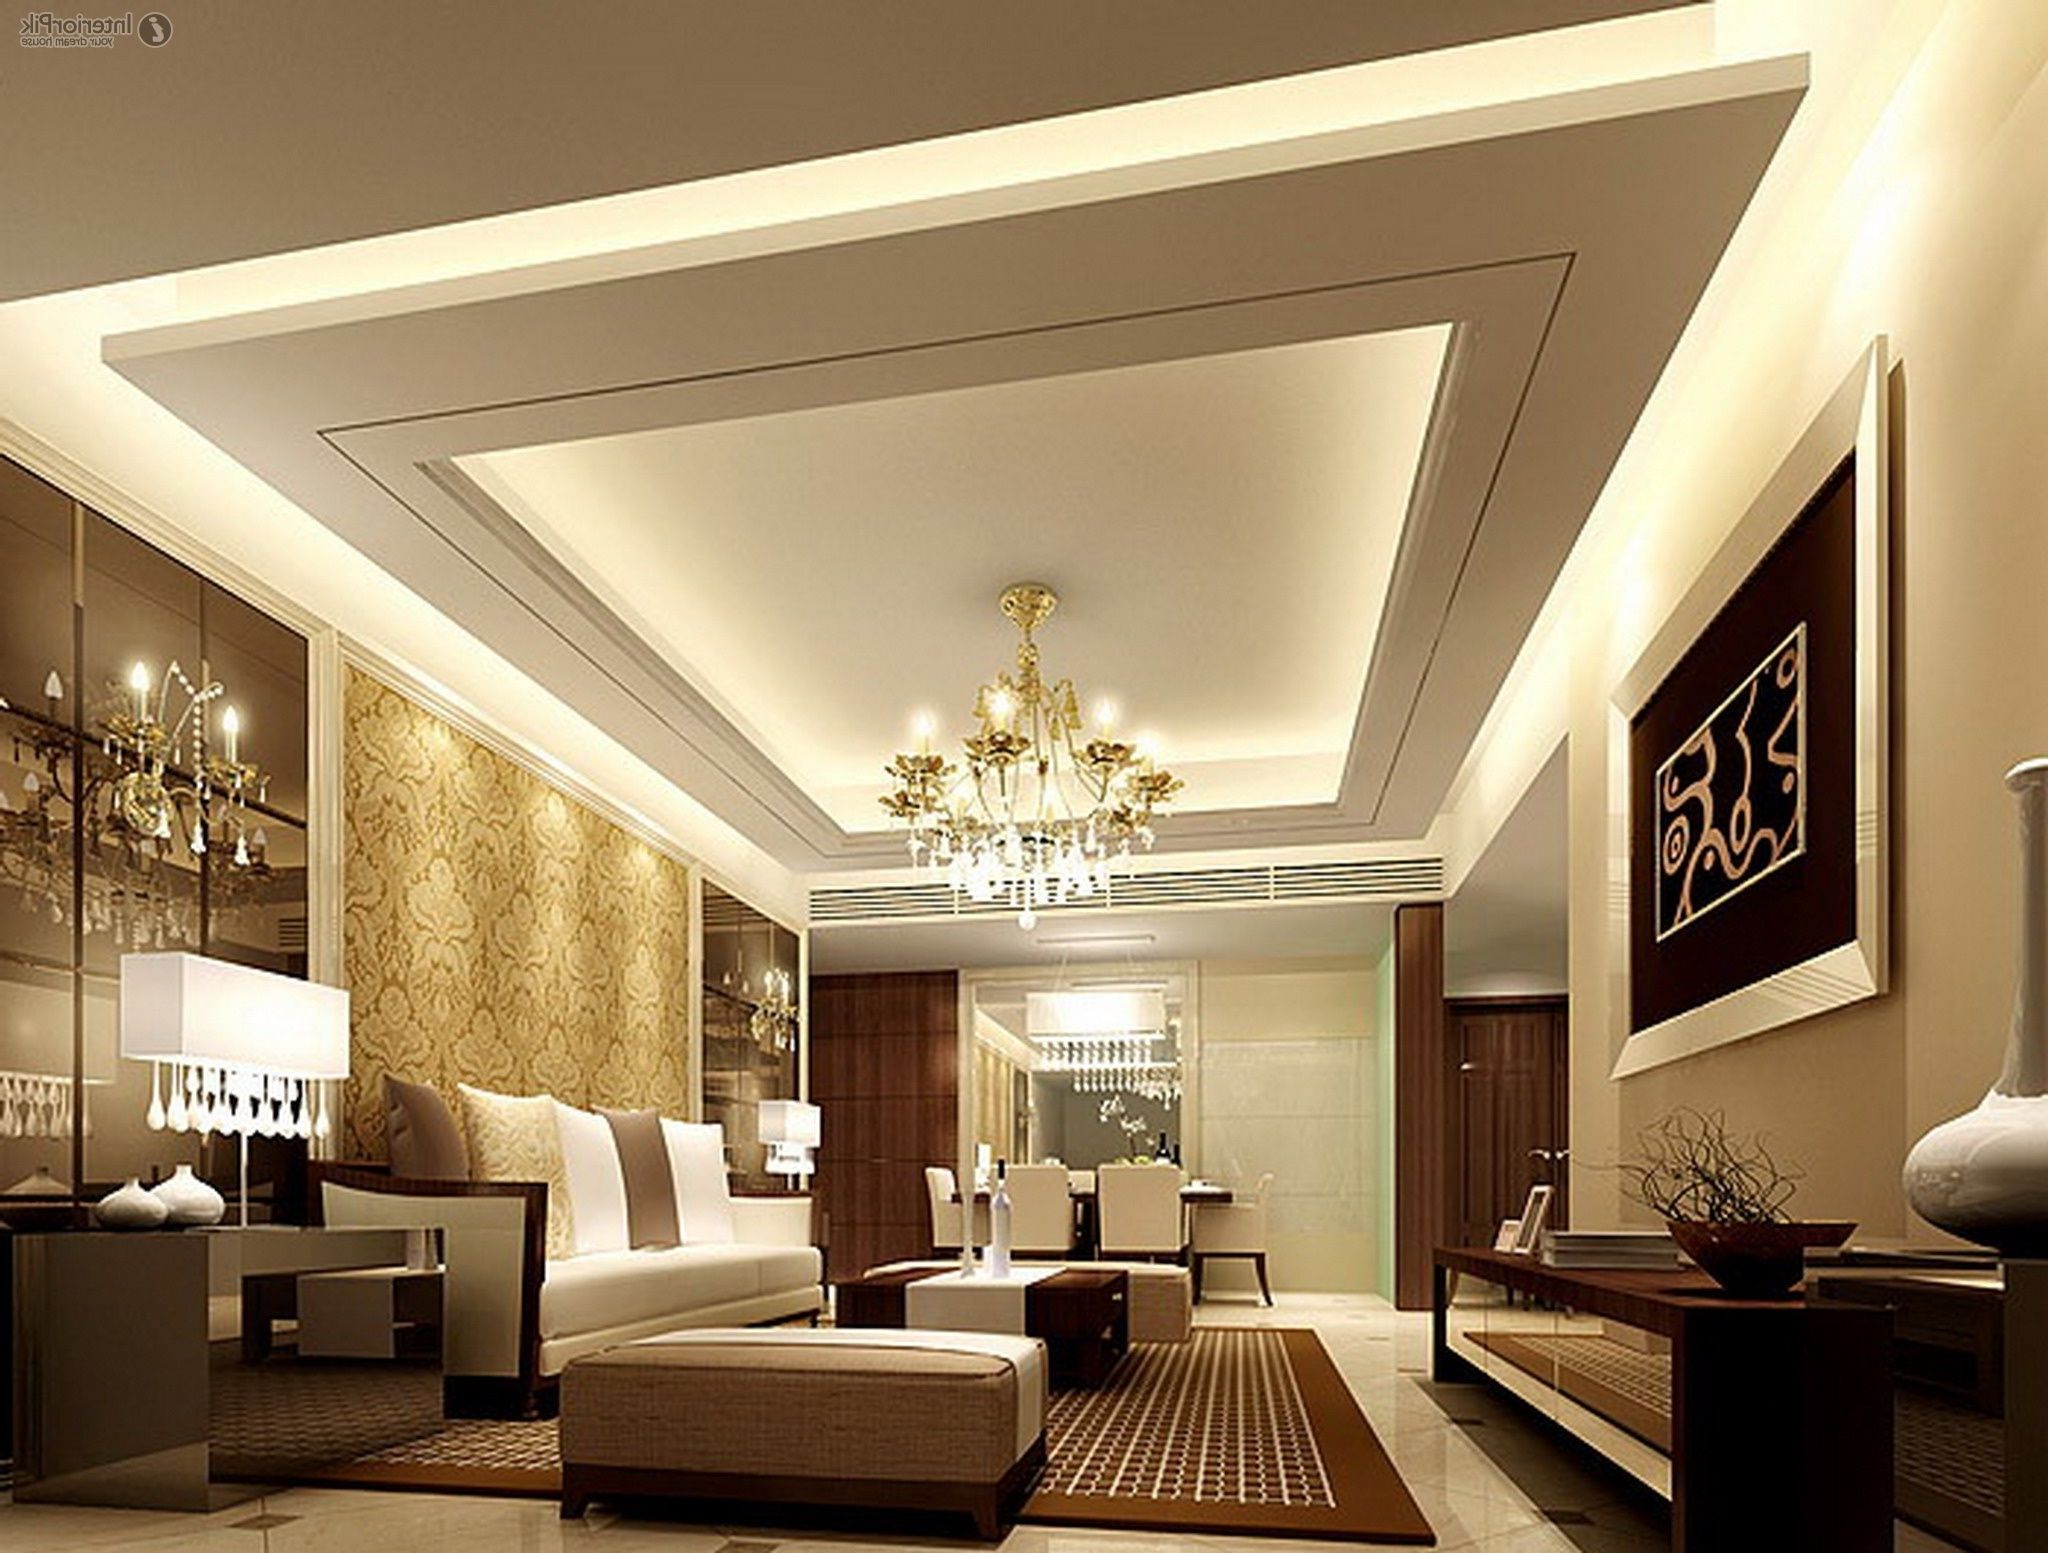 Interior Decoration Of Small Living Room 17 Best Ideas About Gypsum Ceiling On Pinterest False Ceiling